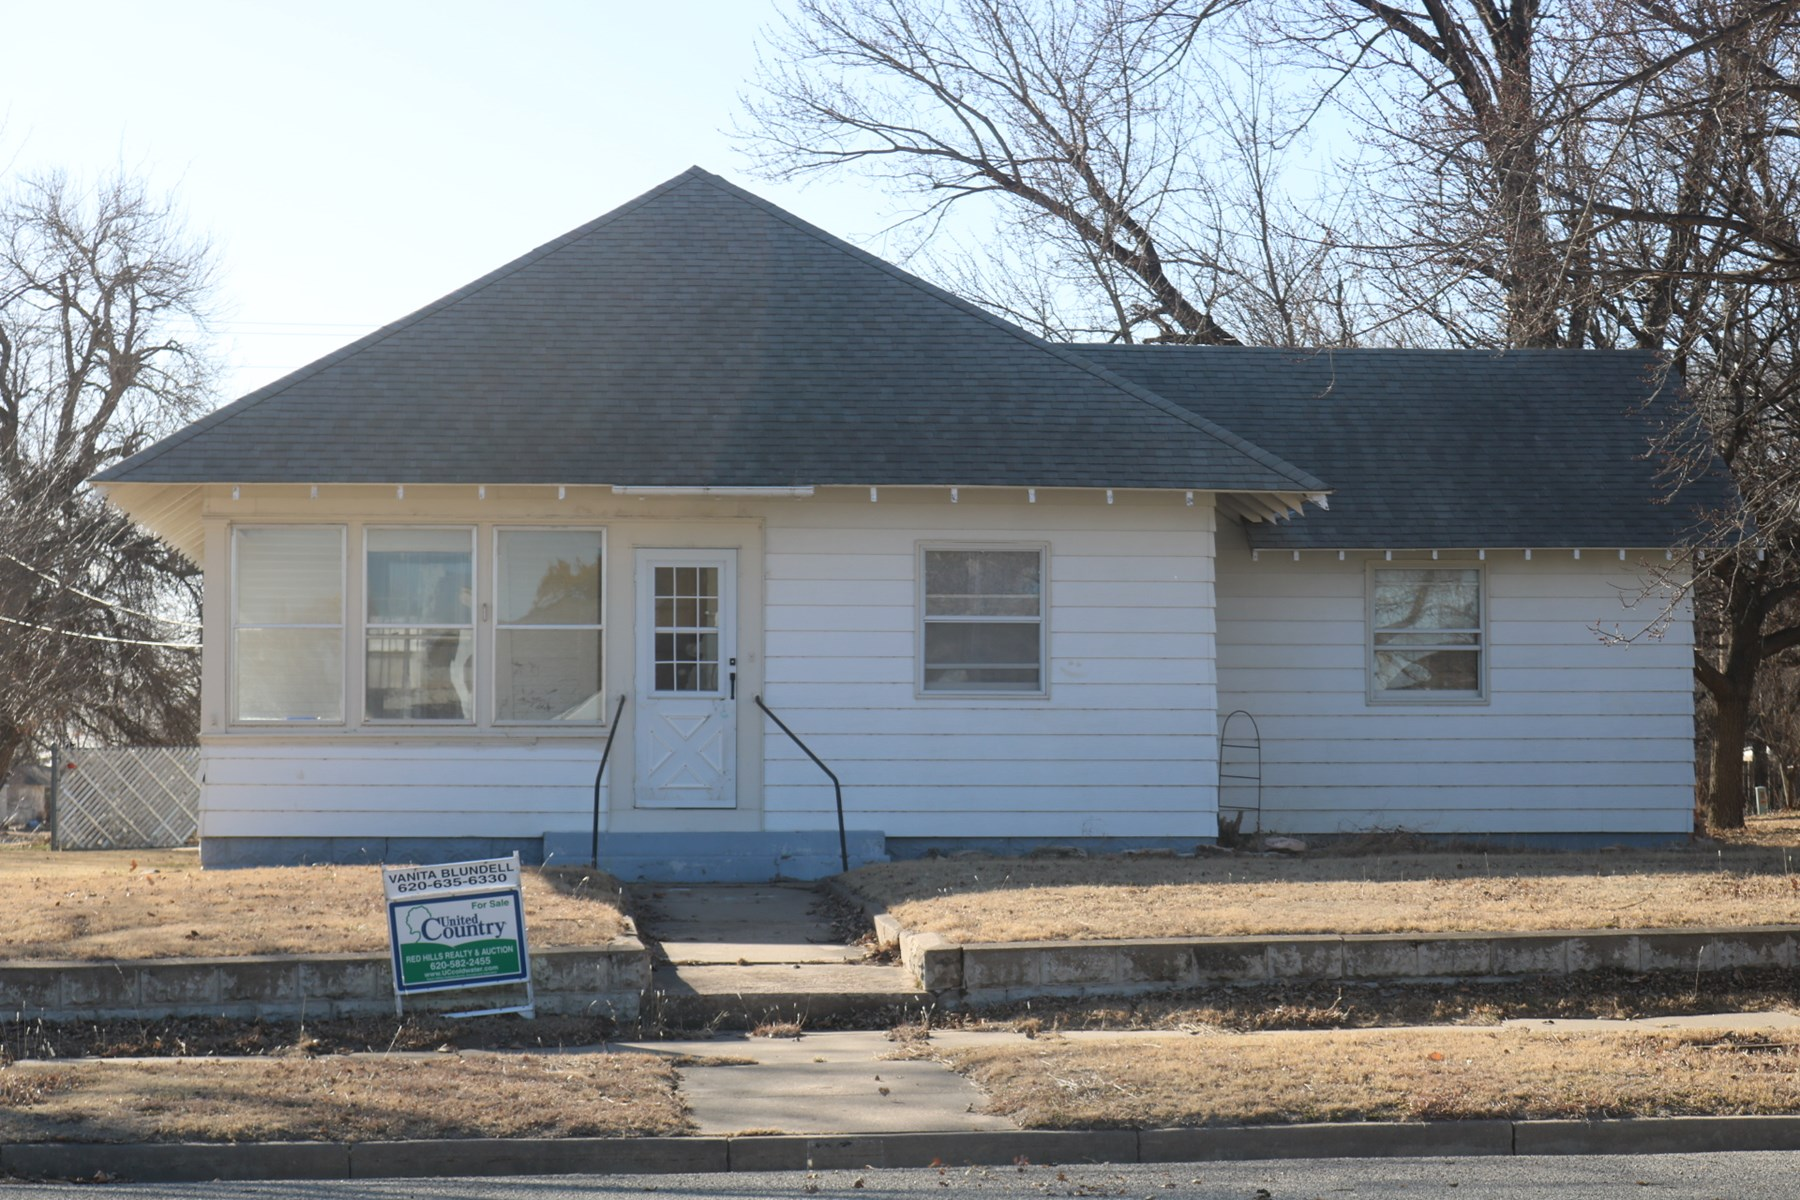 Home in town, Protection,Ks for sale